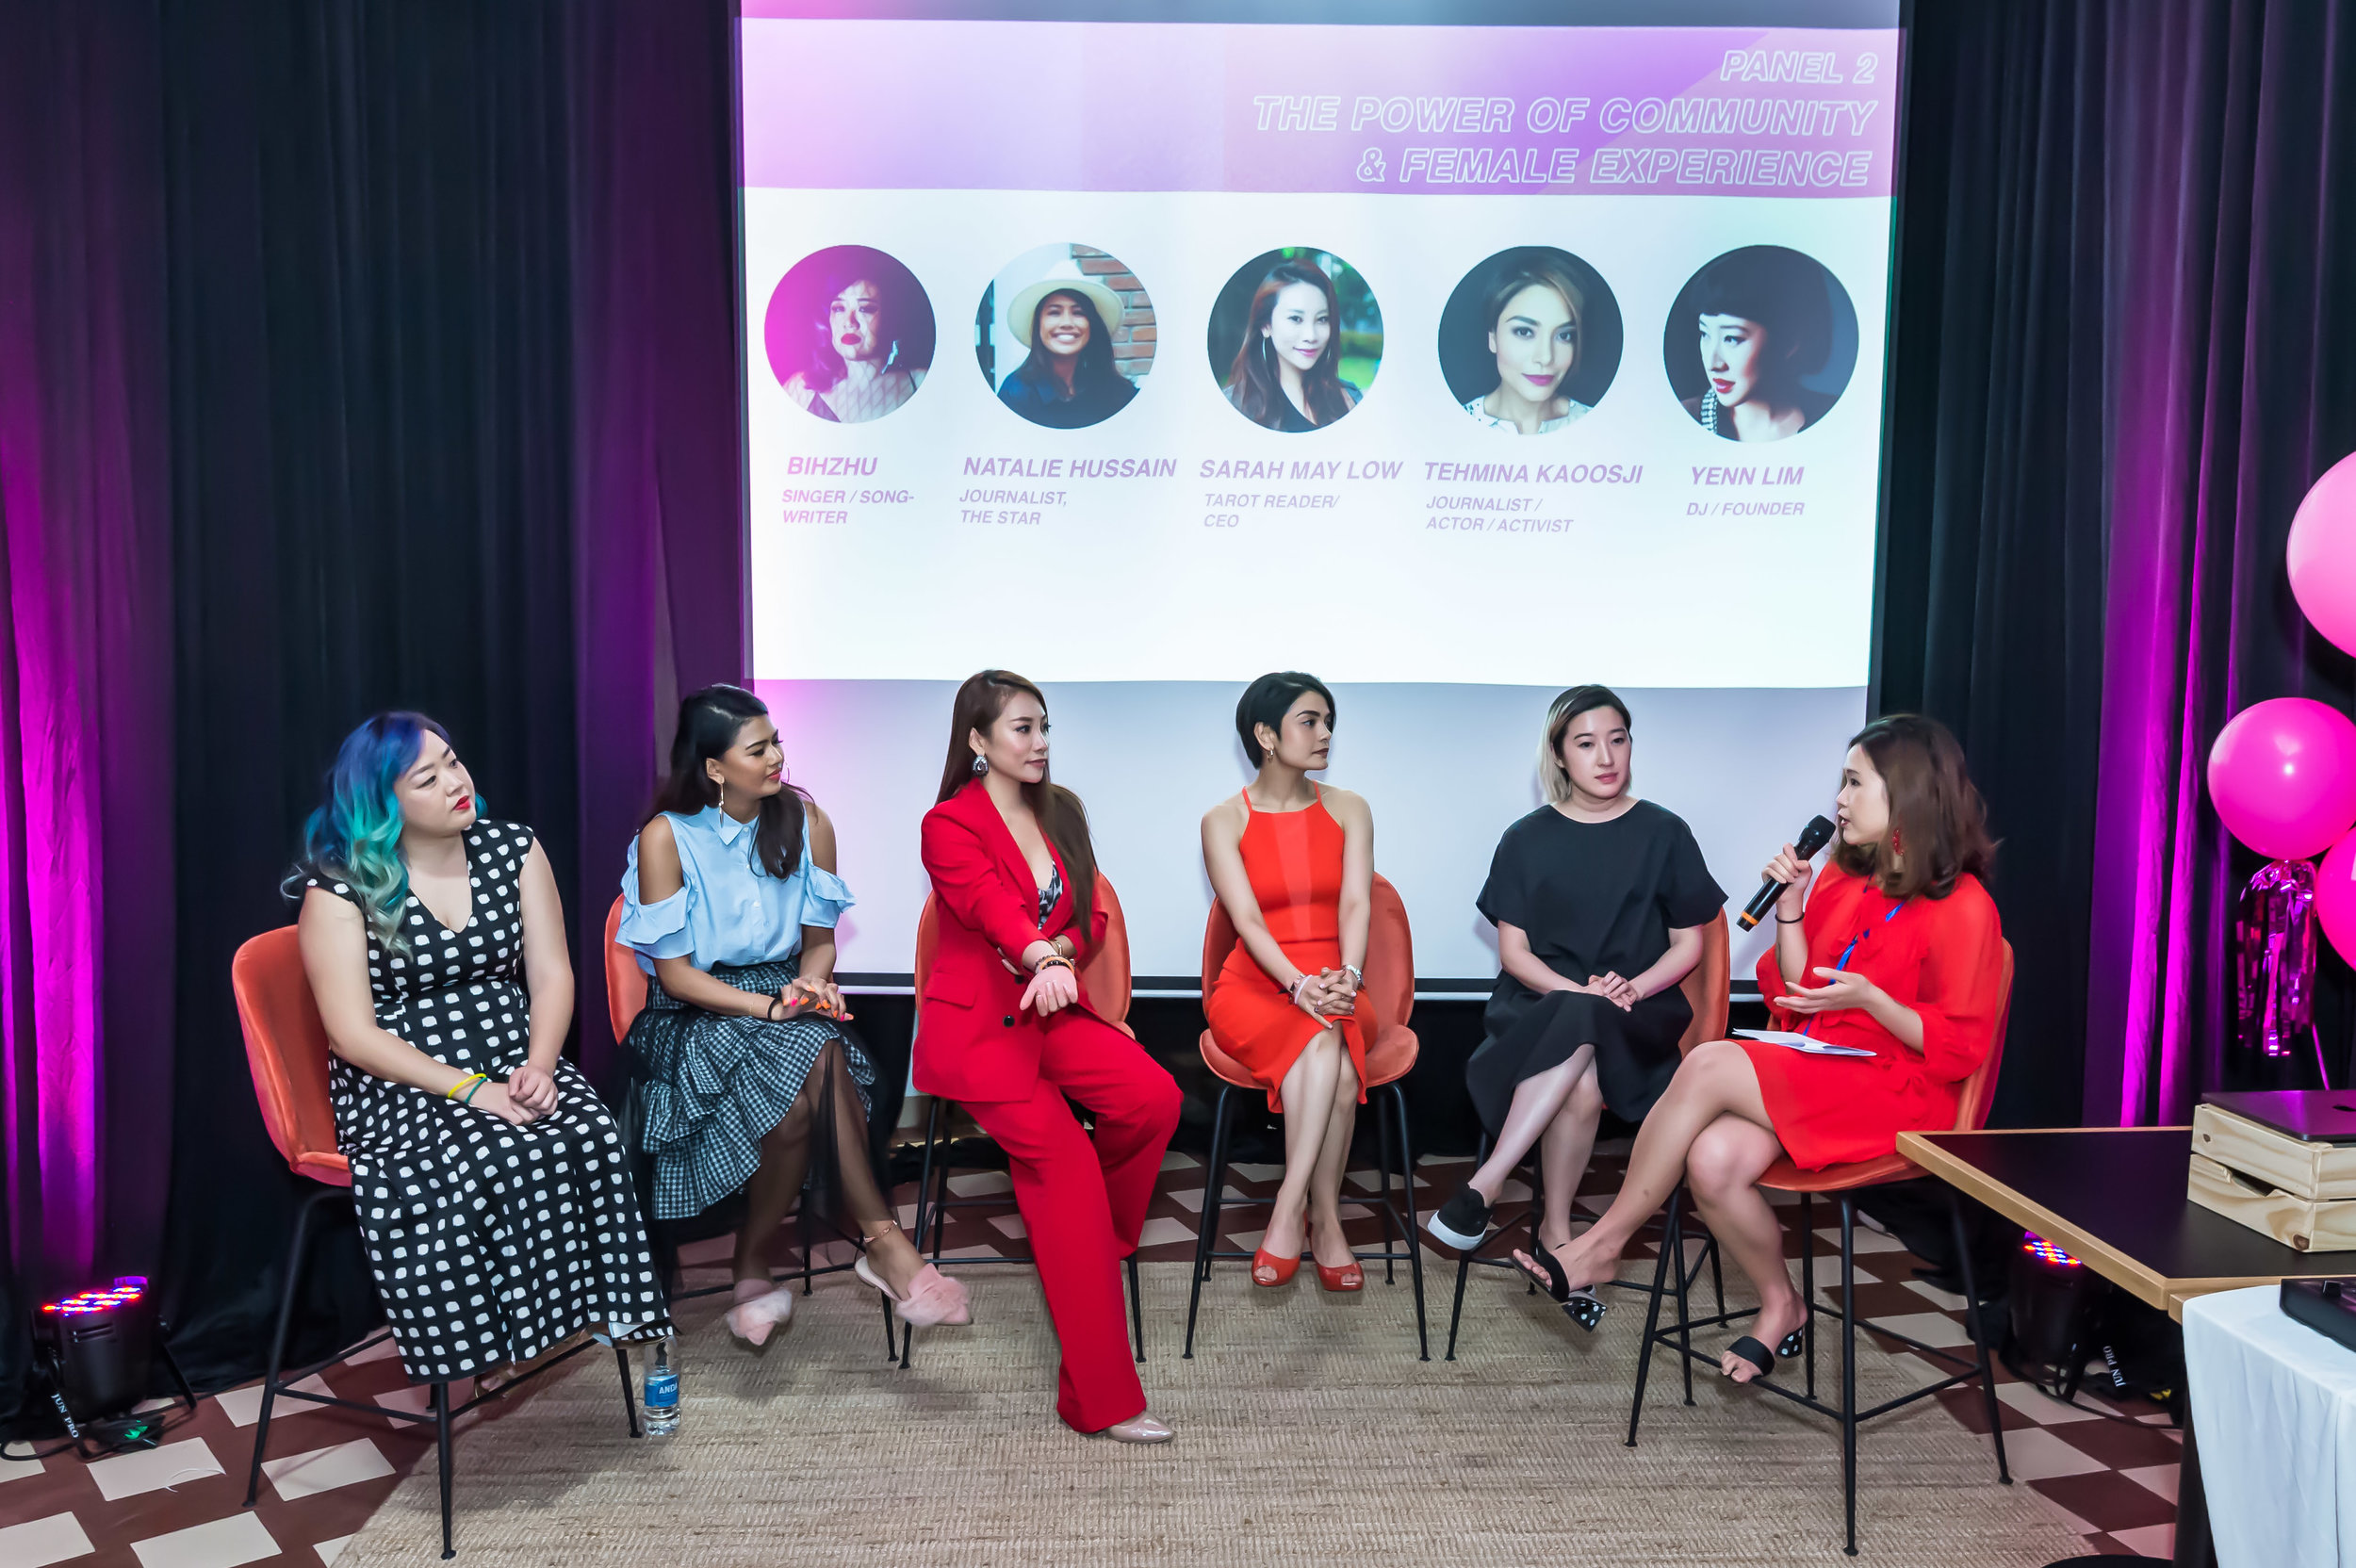 BIHZHU  Singer/Songwriter  NATALIE HUSSAIN  Journalist, The Star  SARAH MAY LOW  Tarot Reader/CEO of Dragon Phoenix Media & Events TEHMINA  Tehmina KAOOSJI  Journalist/Actor/Activist  YENN LIM  DJ/Founder of LEN by Yenn Lim Moderated by  Melly Ling , Brand Manager of  Swingvy